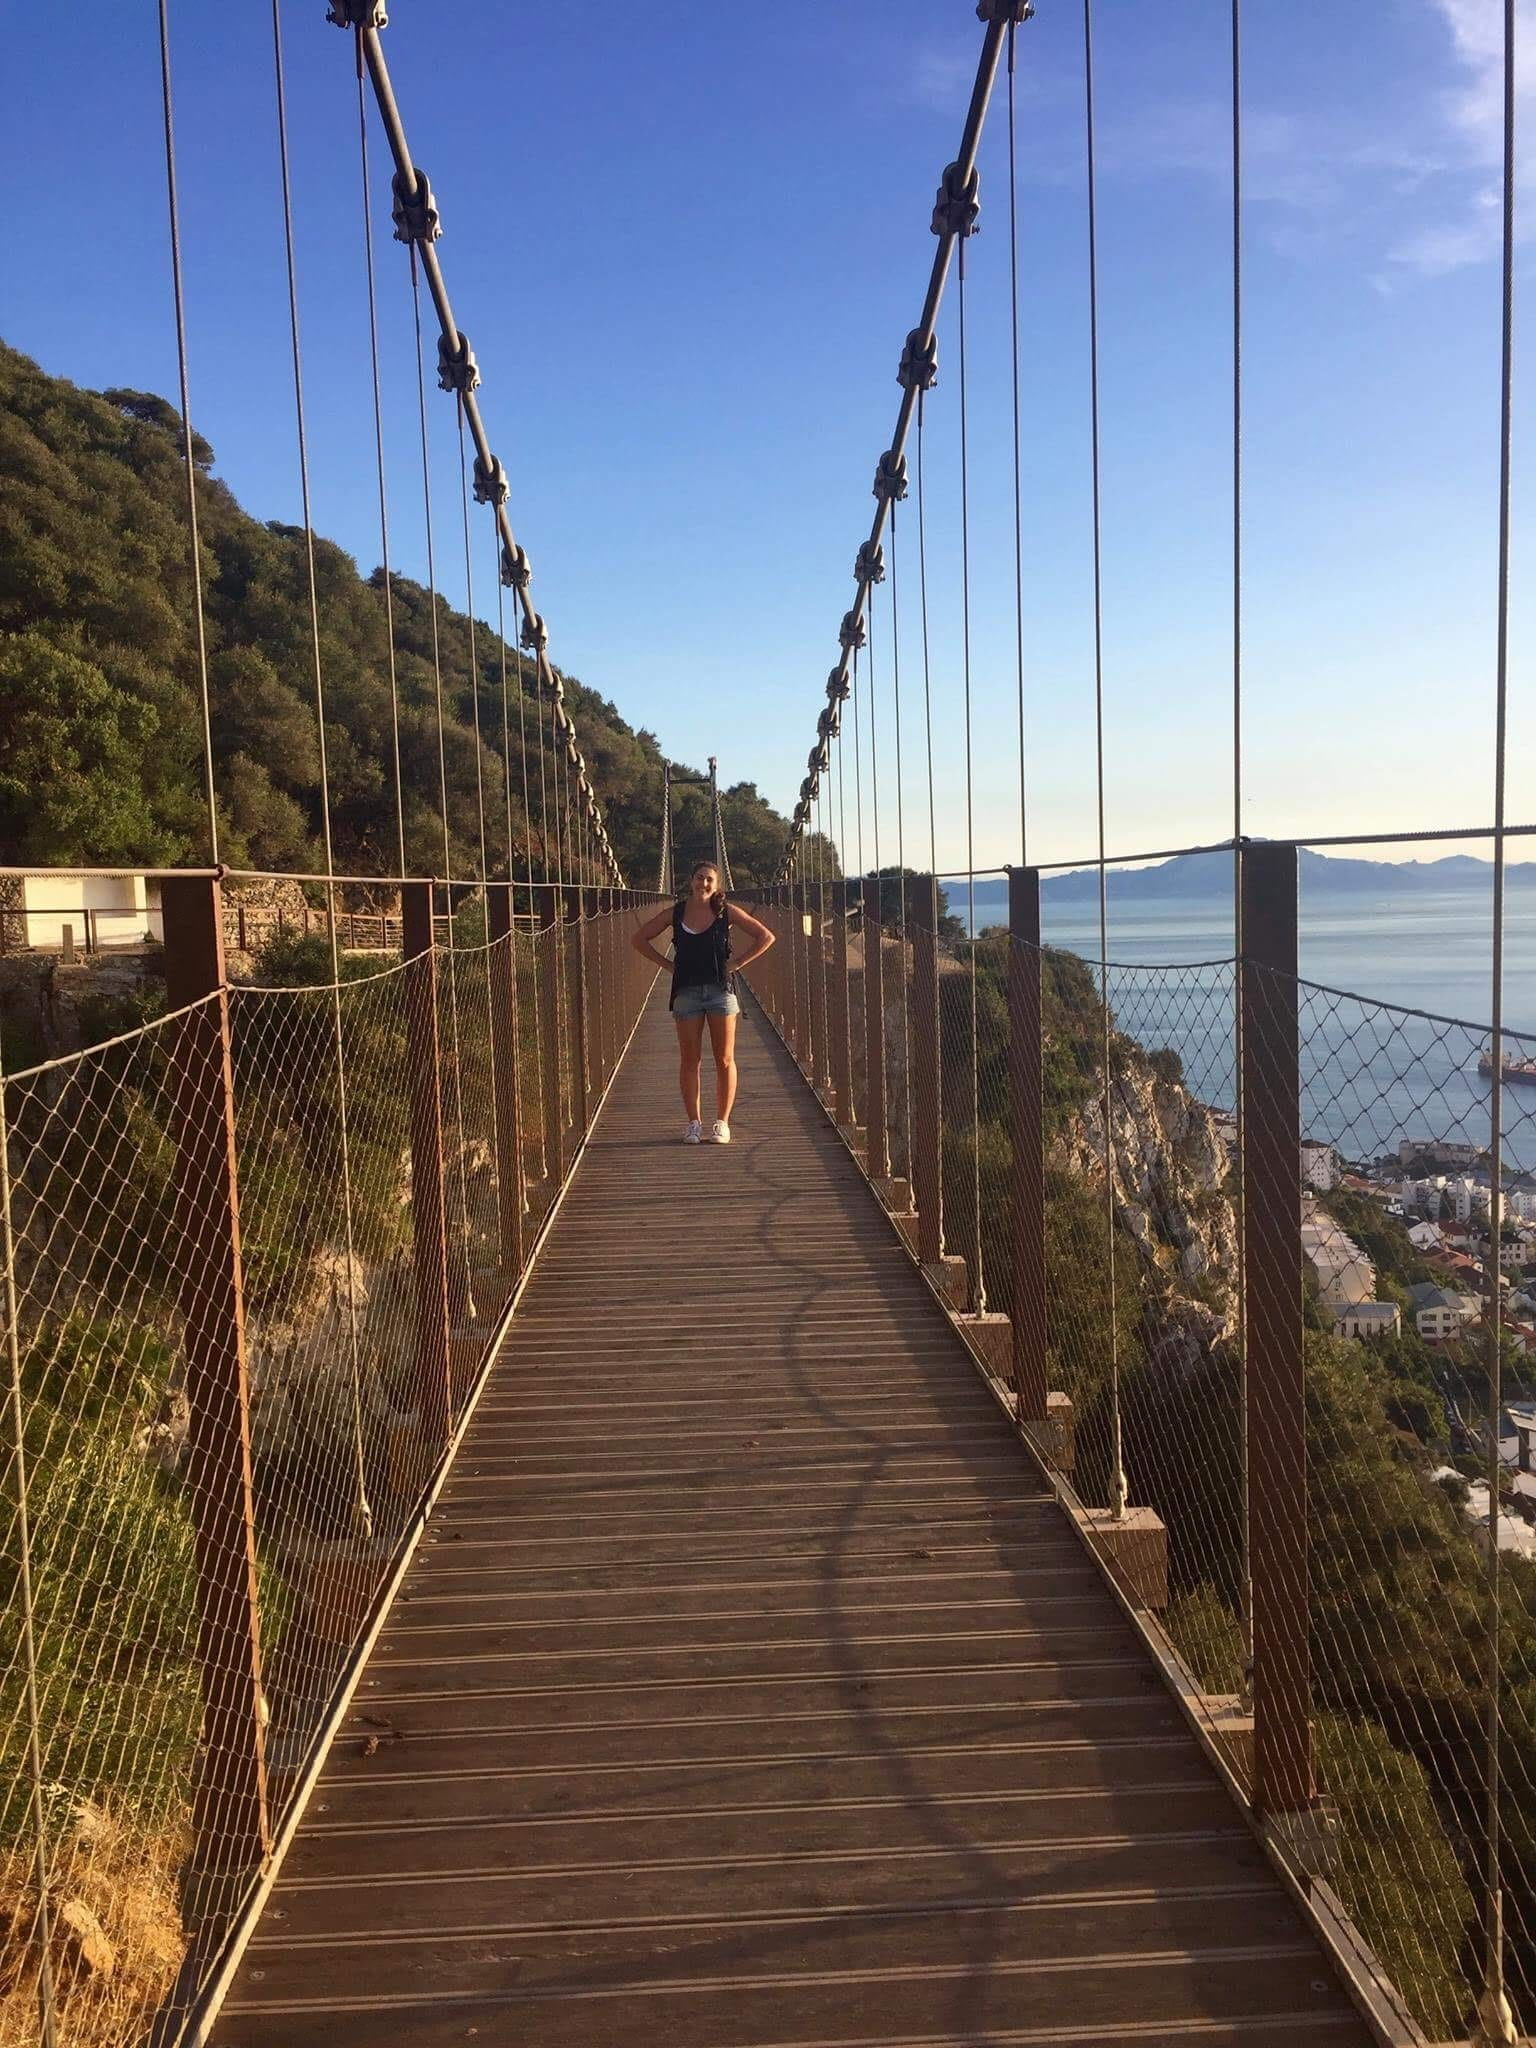 Author standing on a suspension bridge